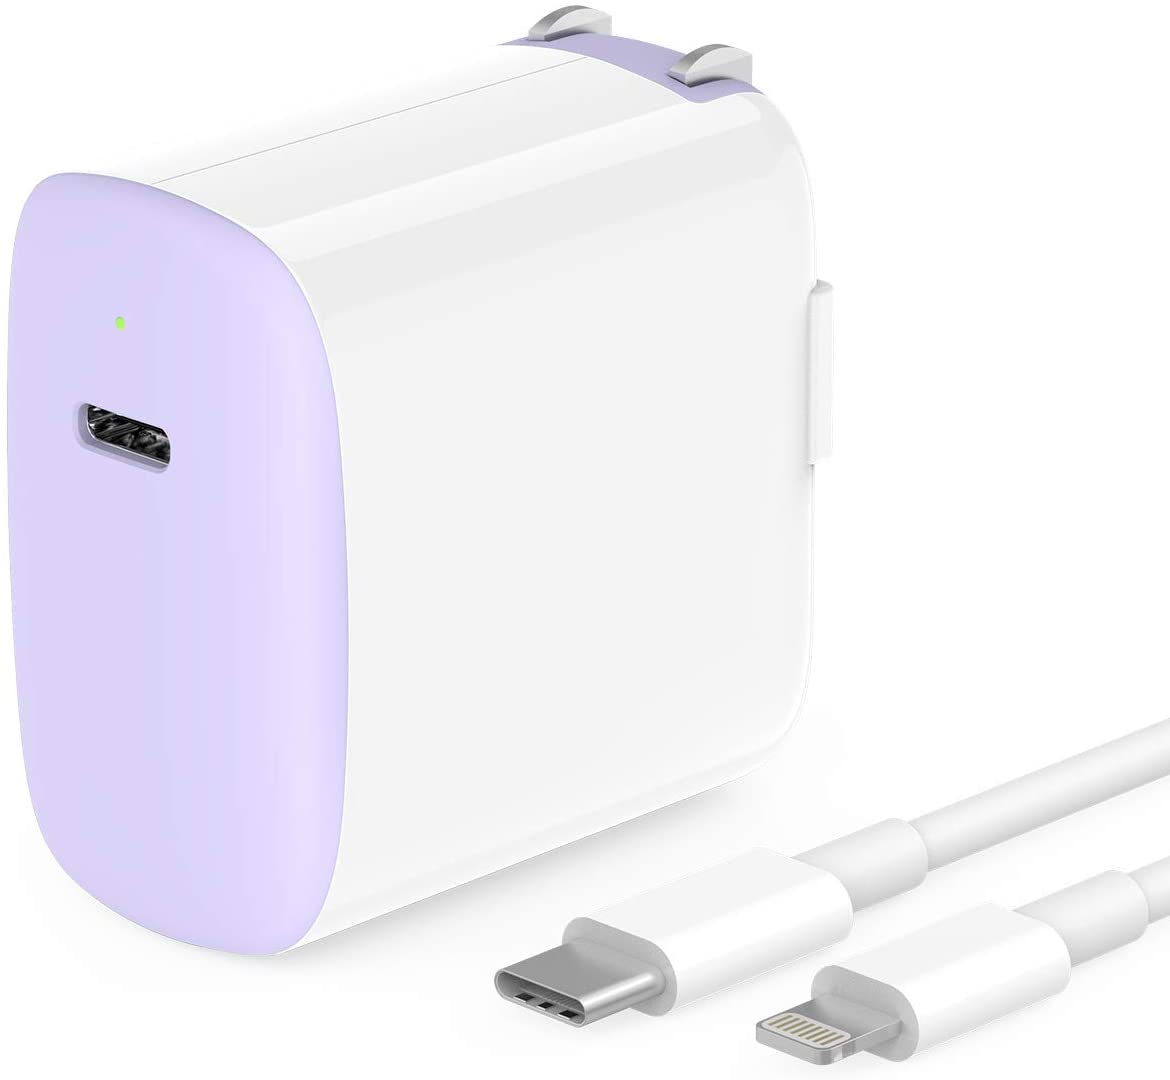 Fast Charger for iPhone 11/11 Pro Max/XR/Xs Max/X/8, iPad Pro 12.9 Gen 1/2, iPad Pro 10.5, iPad 7/Air 3/Mini 5, Apple Certified, 18W USB C, 6.6ft USB C to Lightning Cable, Foldable Plug, LED